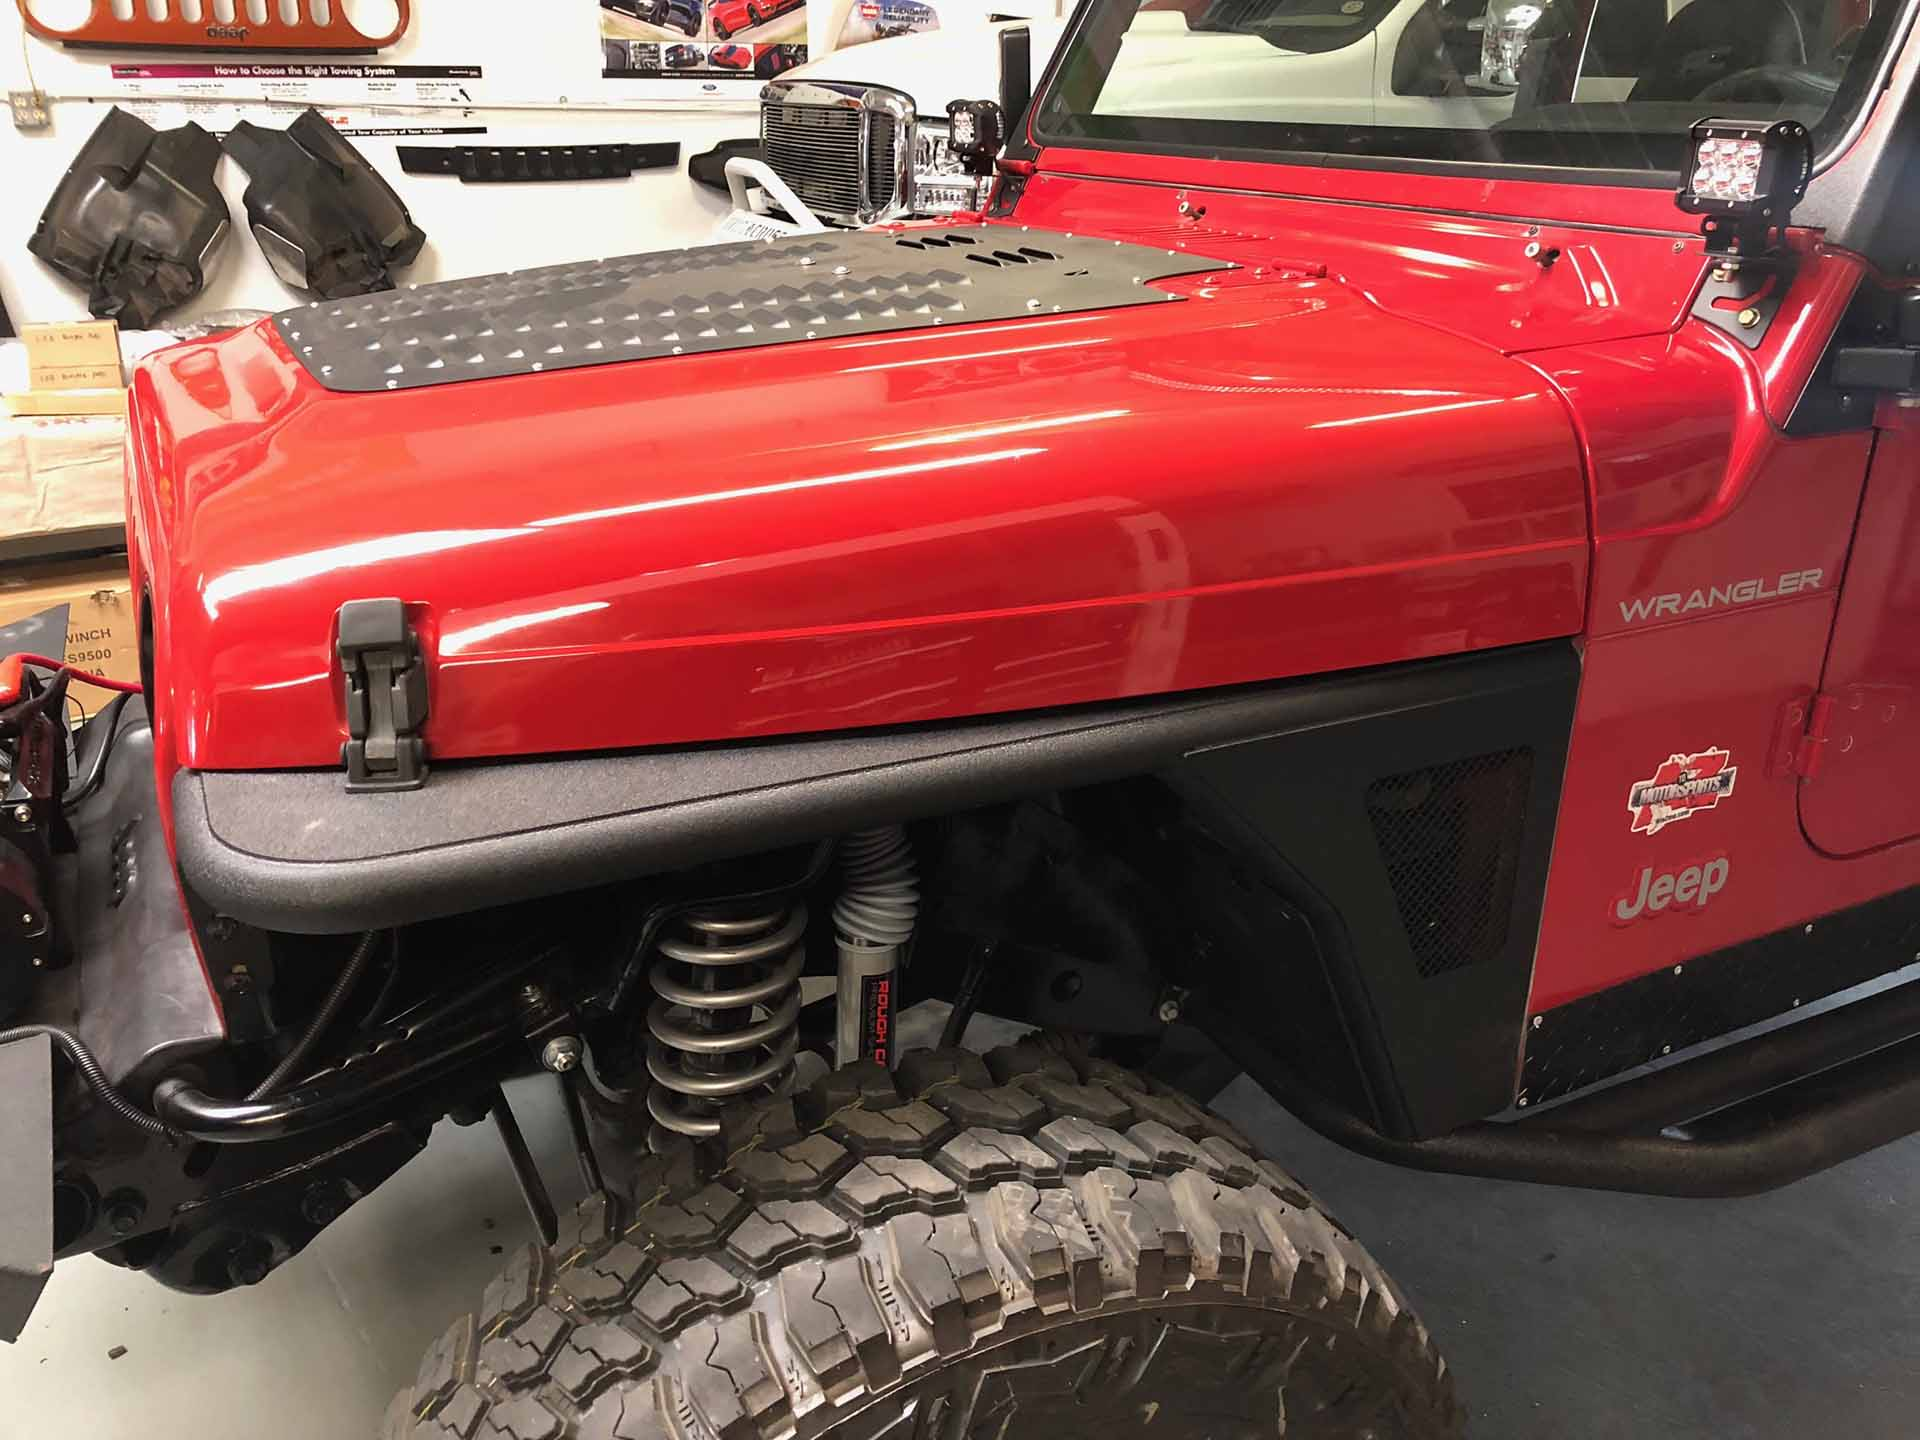 Jeep 2001 Red completed fender